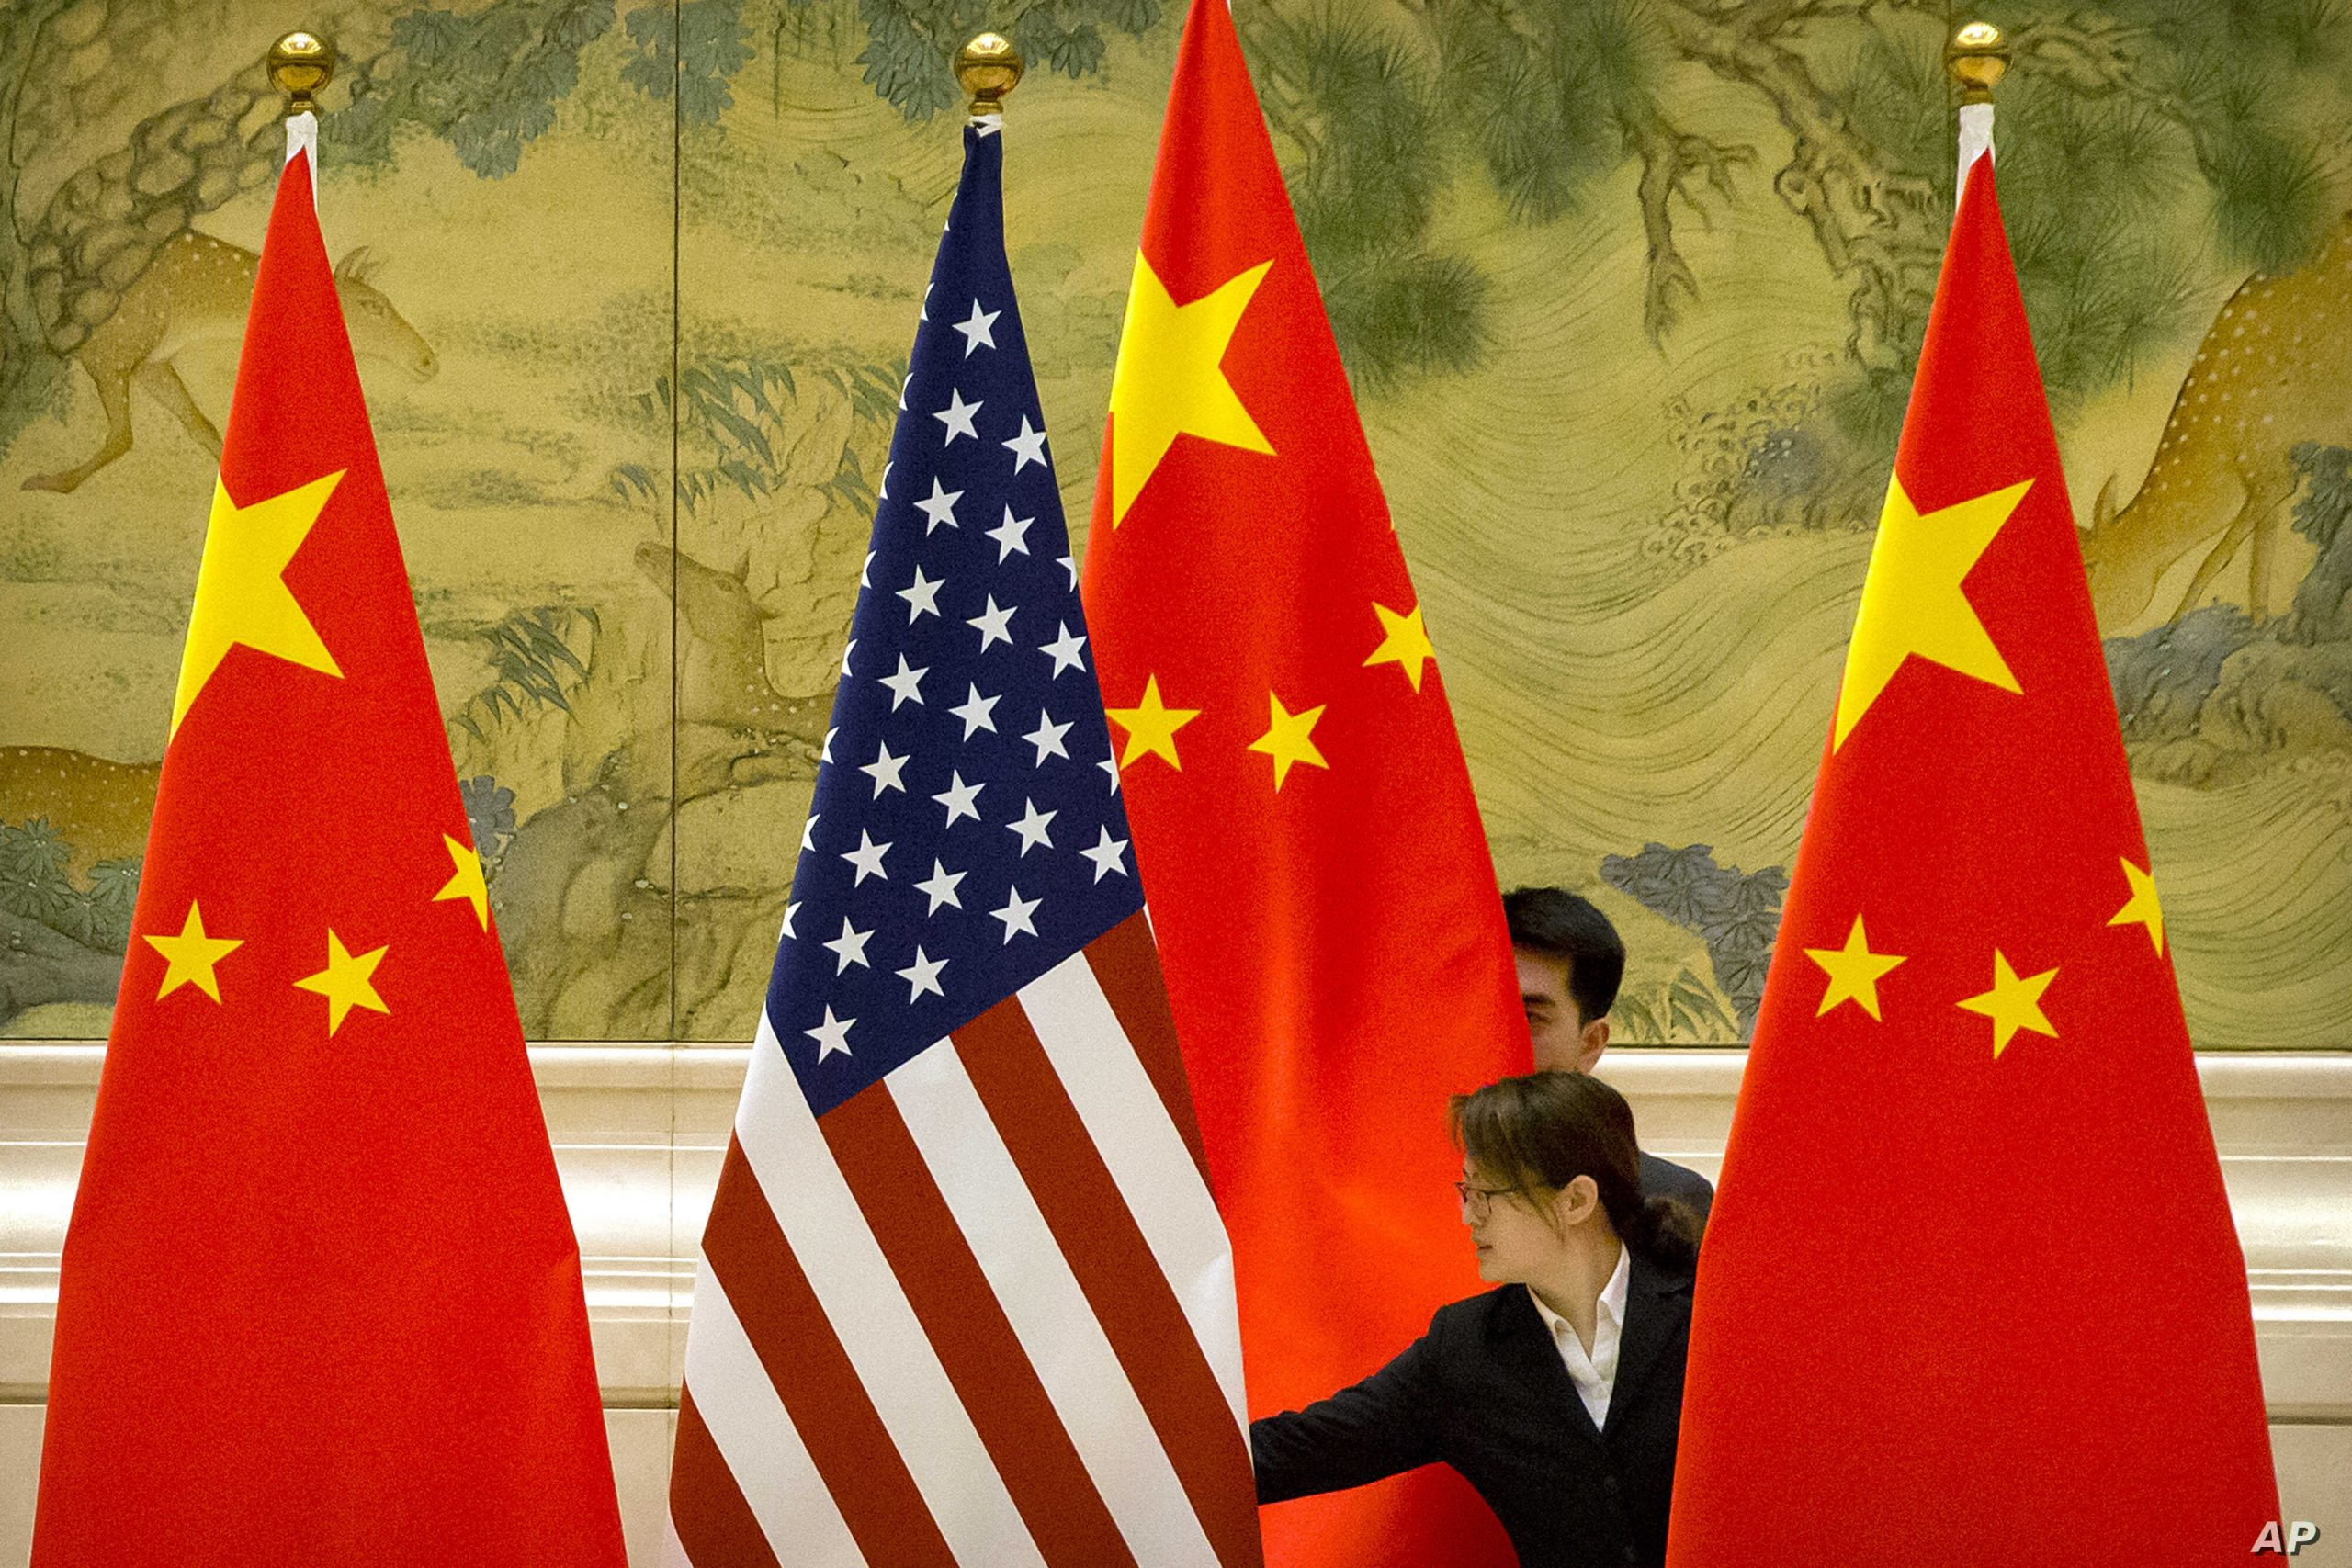 US-China Contest For Influence in Asia By Asfan Tariq